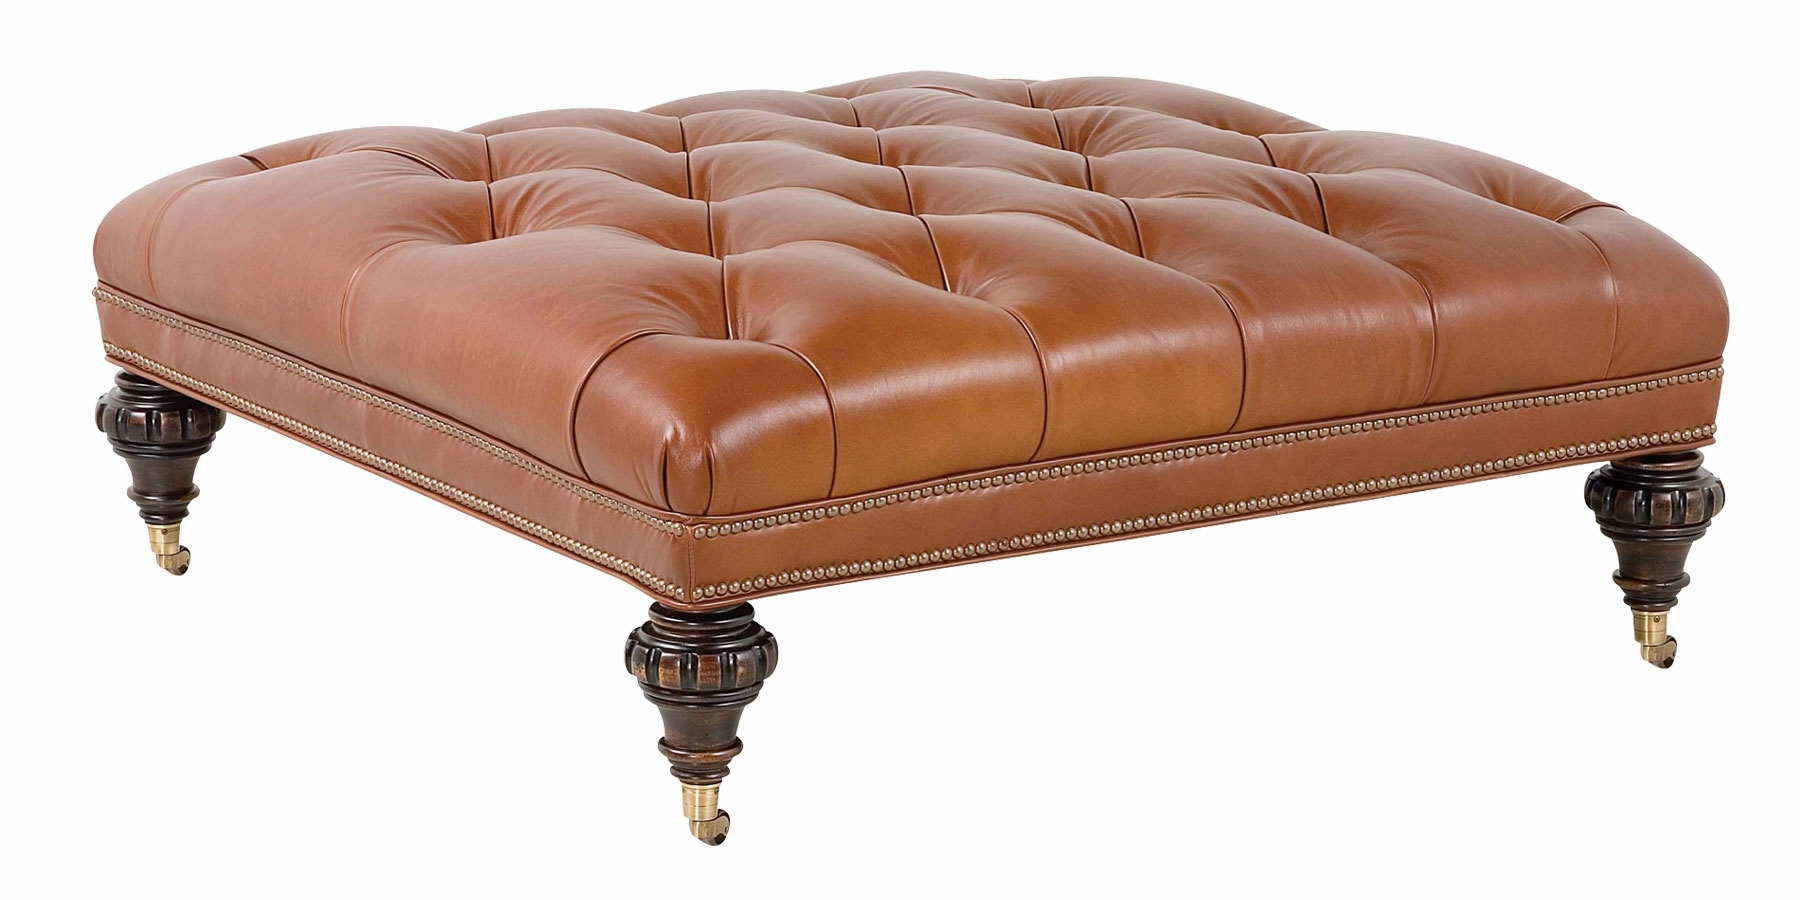 Large Square Traditional Tufted Leather Ottoman